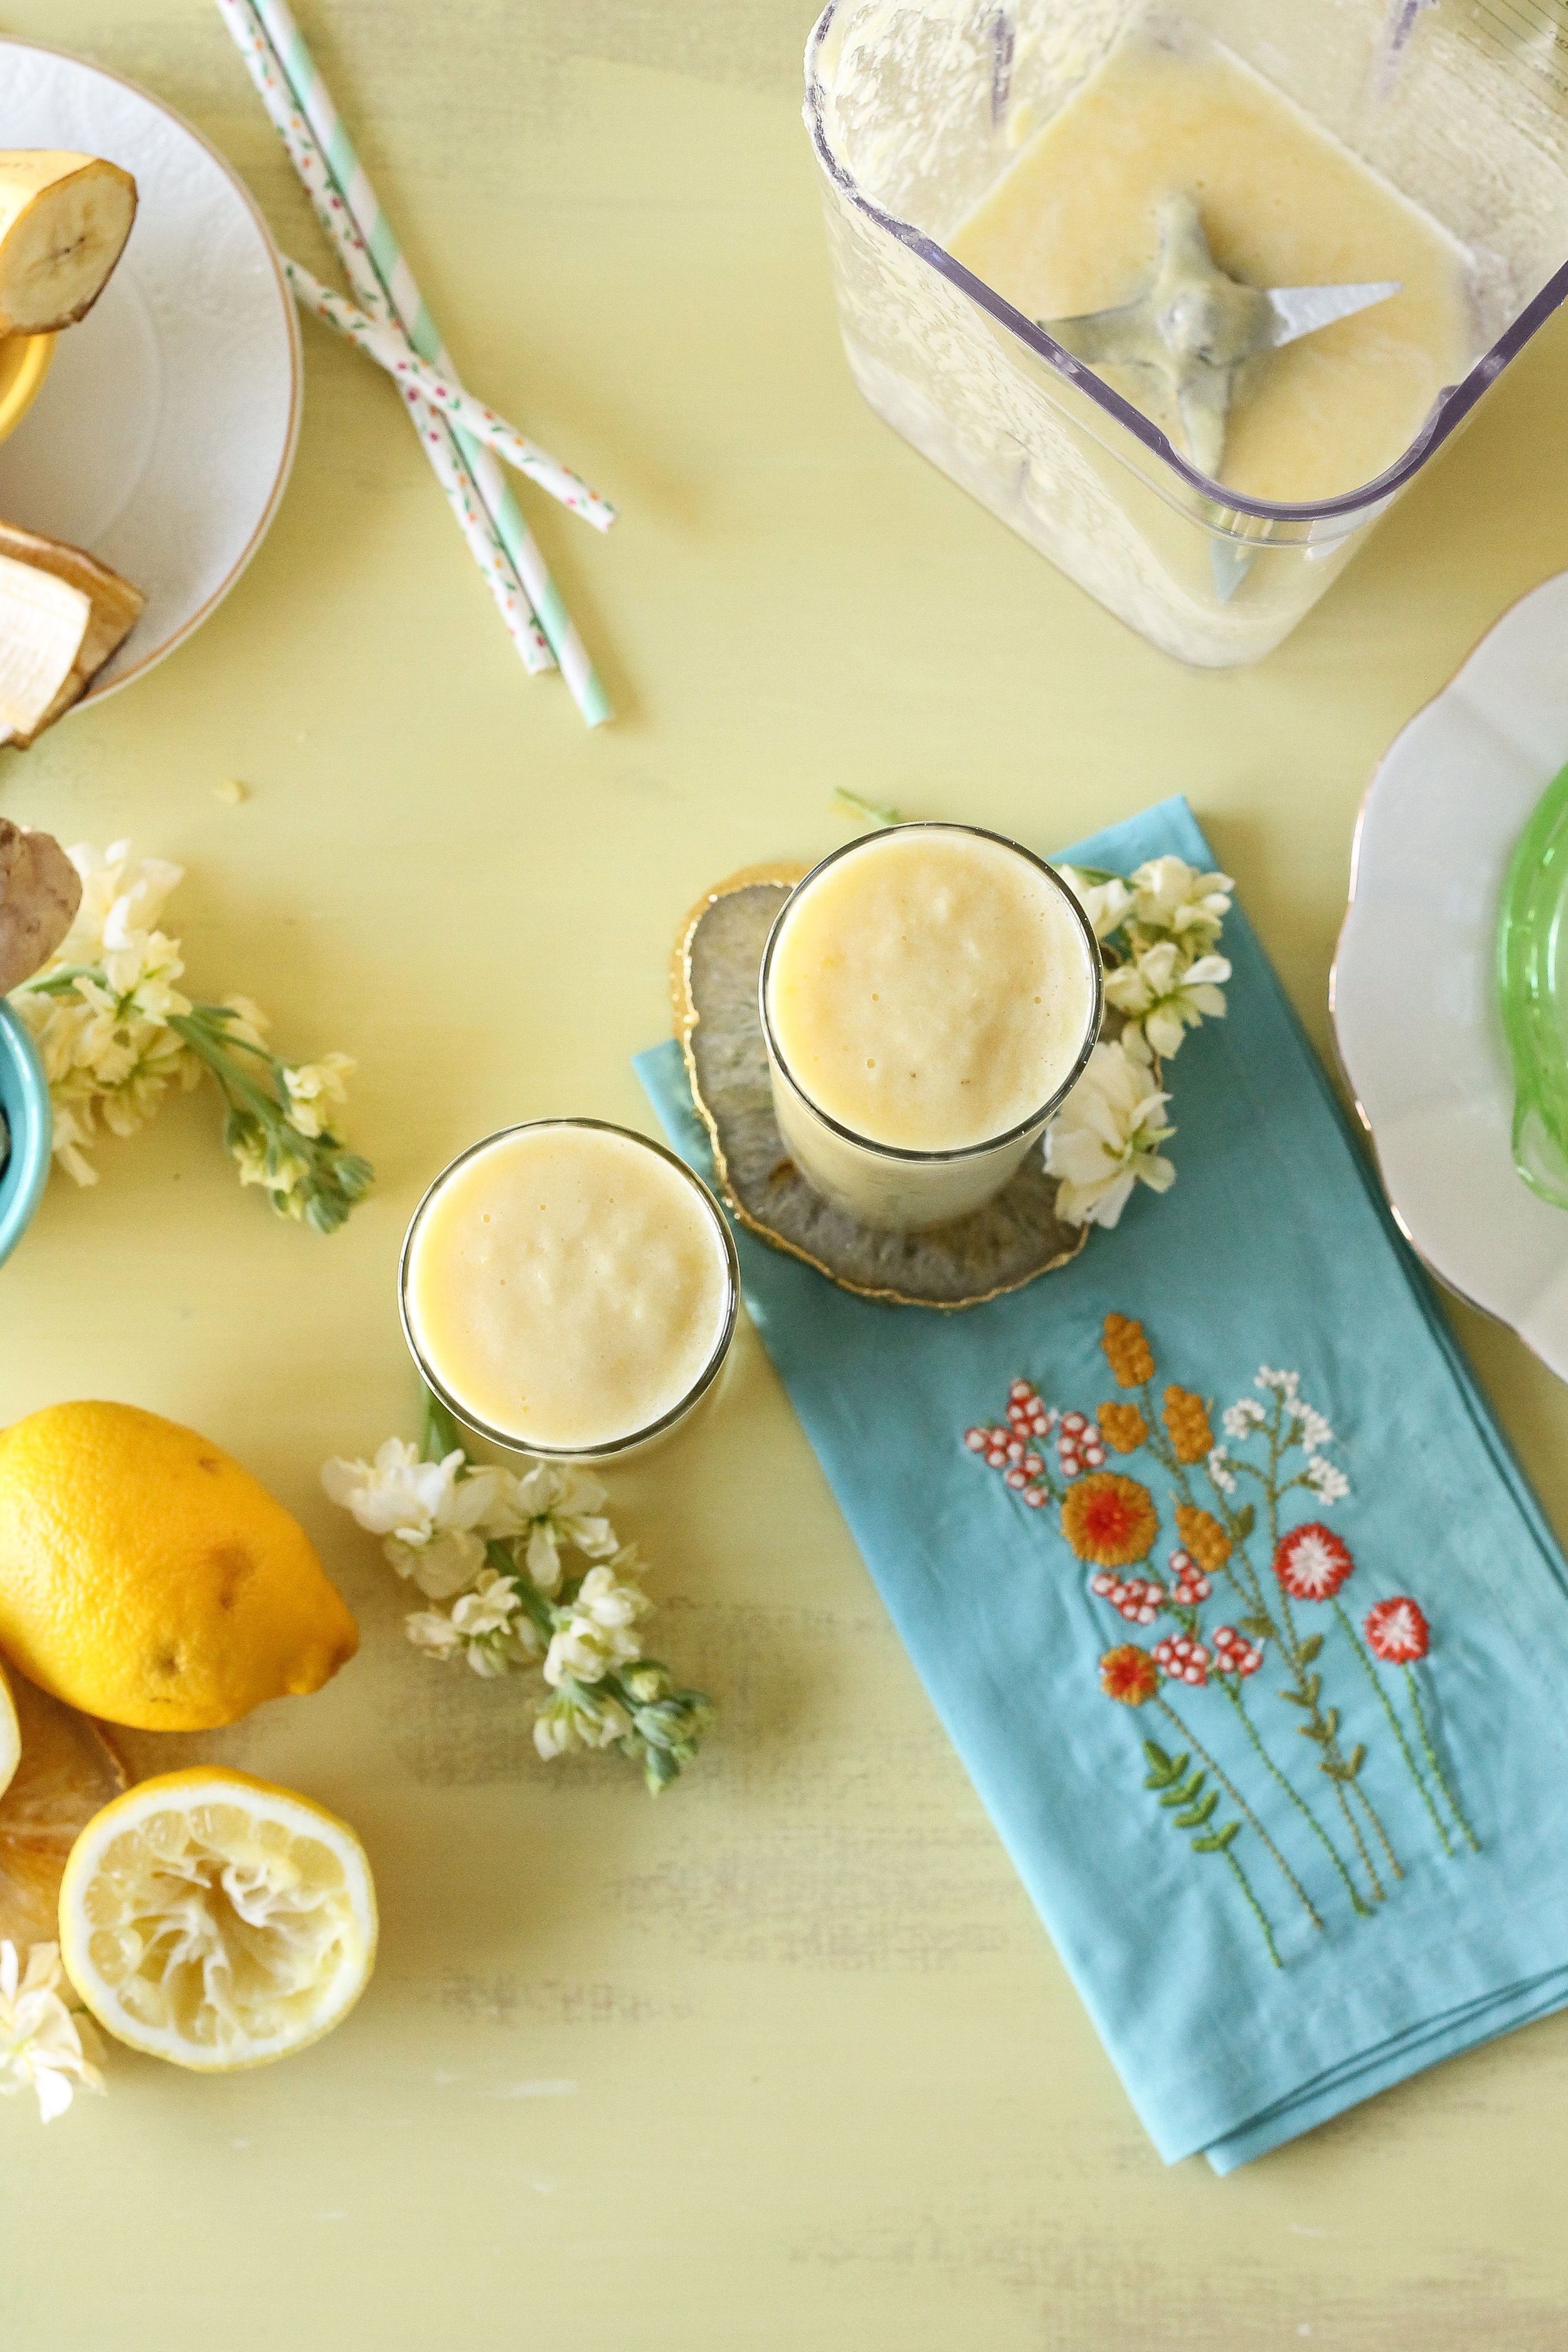 This bright and spicy pineapple ginger smoothie is the perfect way to start off your day!!  Find the recipe on www.pedanticfoodie.com!